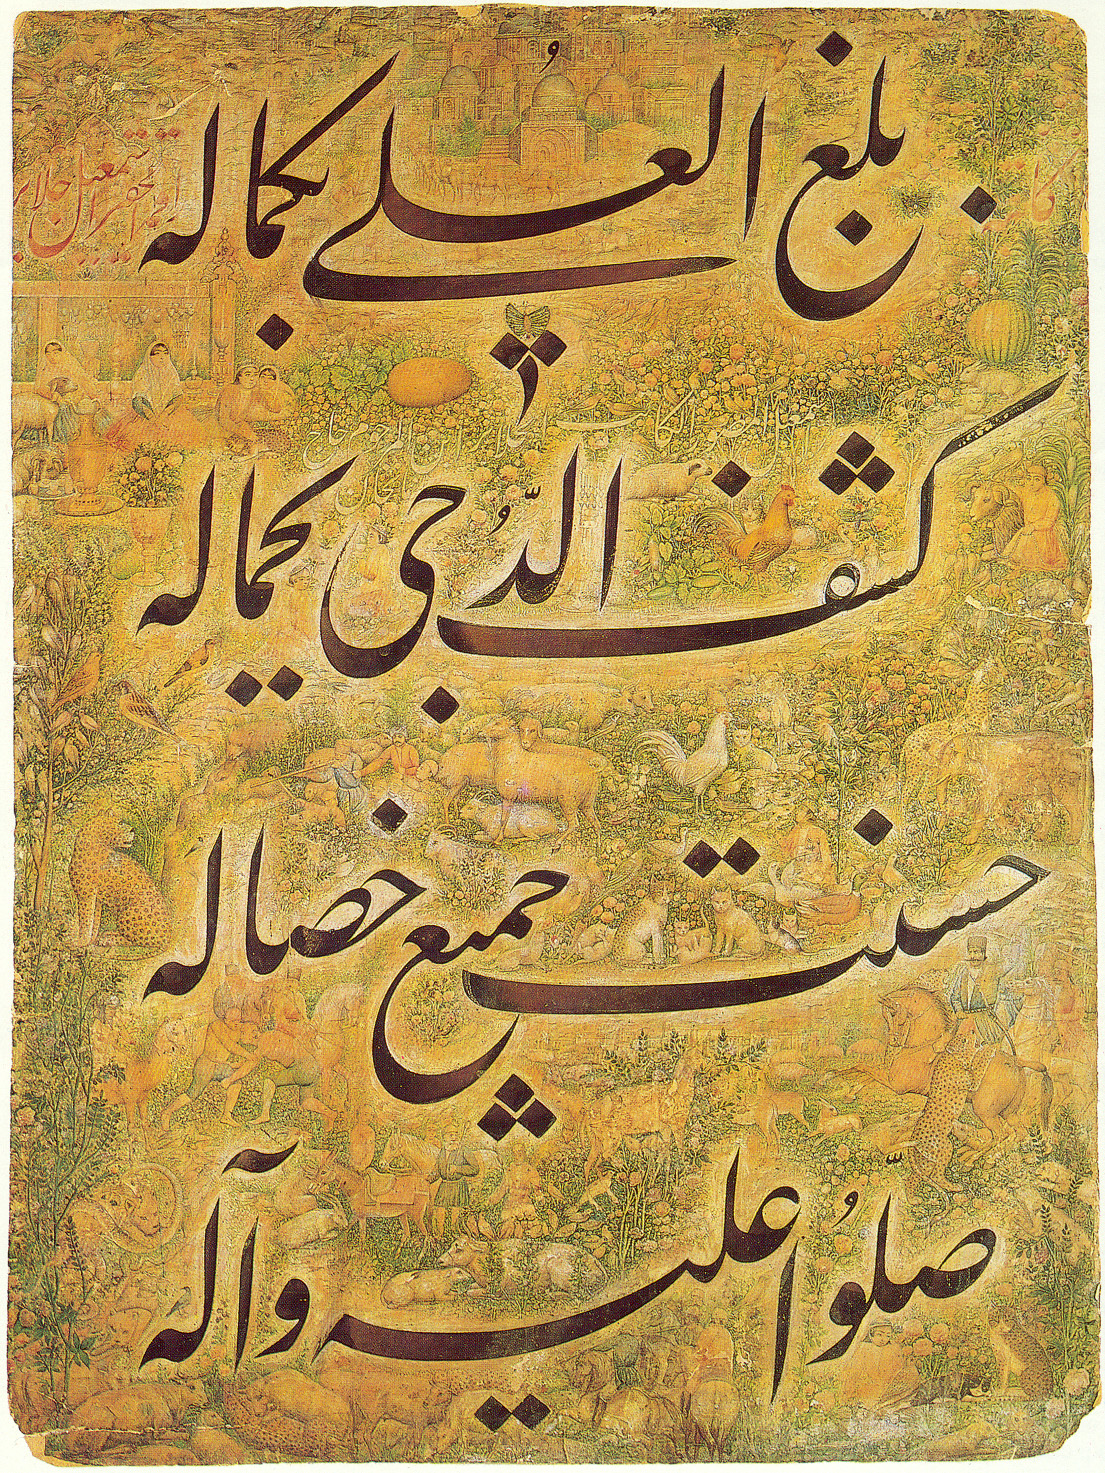 islamic literature poetry Islamic poetry is poetry written by muslims islamic poetry has been written in  many languages  islamic poetry is different in many ways like cultural,  traditions, literature, etc hashem stated, islamic religious poetry has been  composed in a.